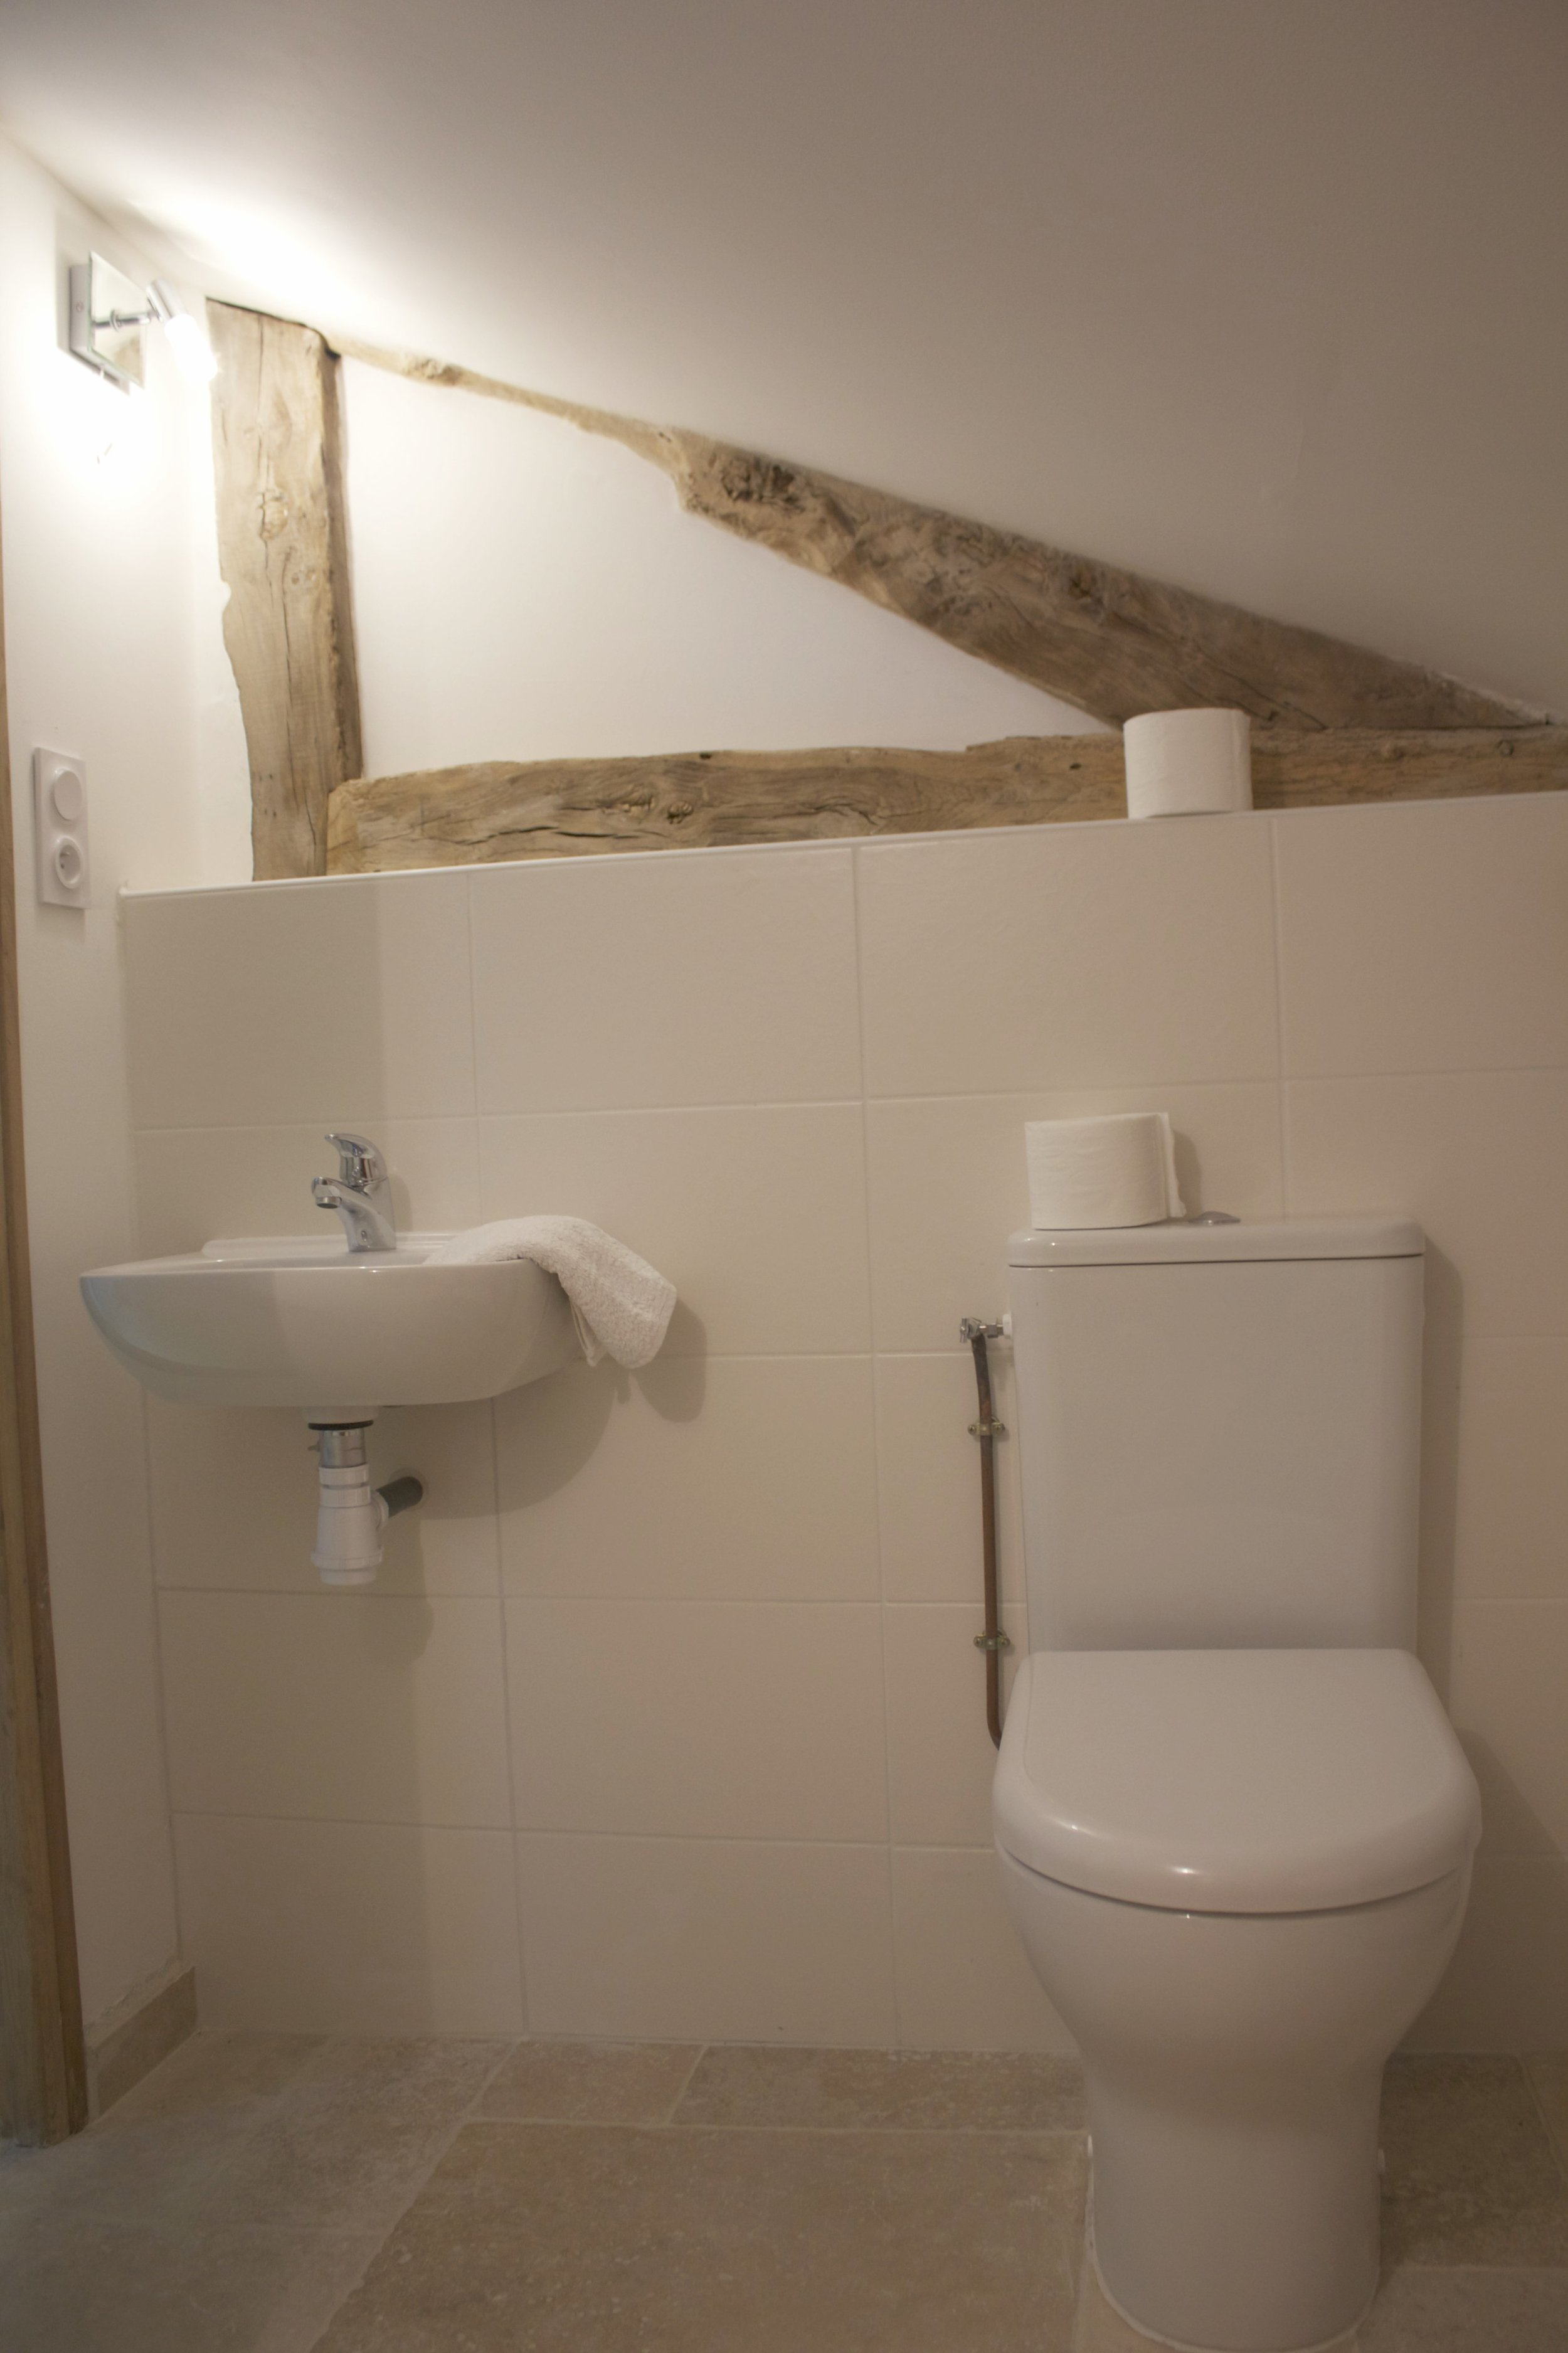 7. The toilet next to the Grenier bedroom.